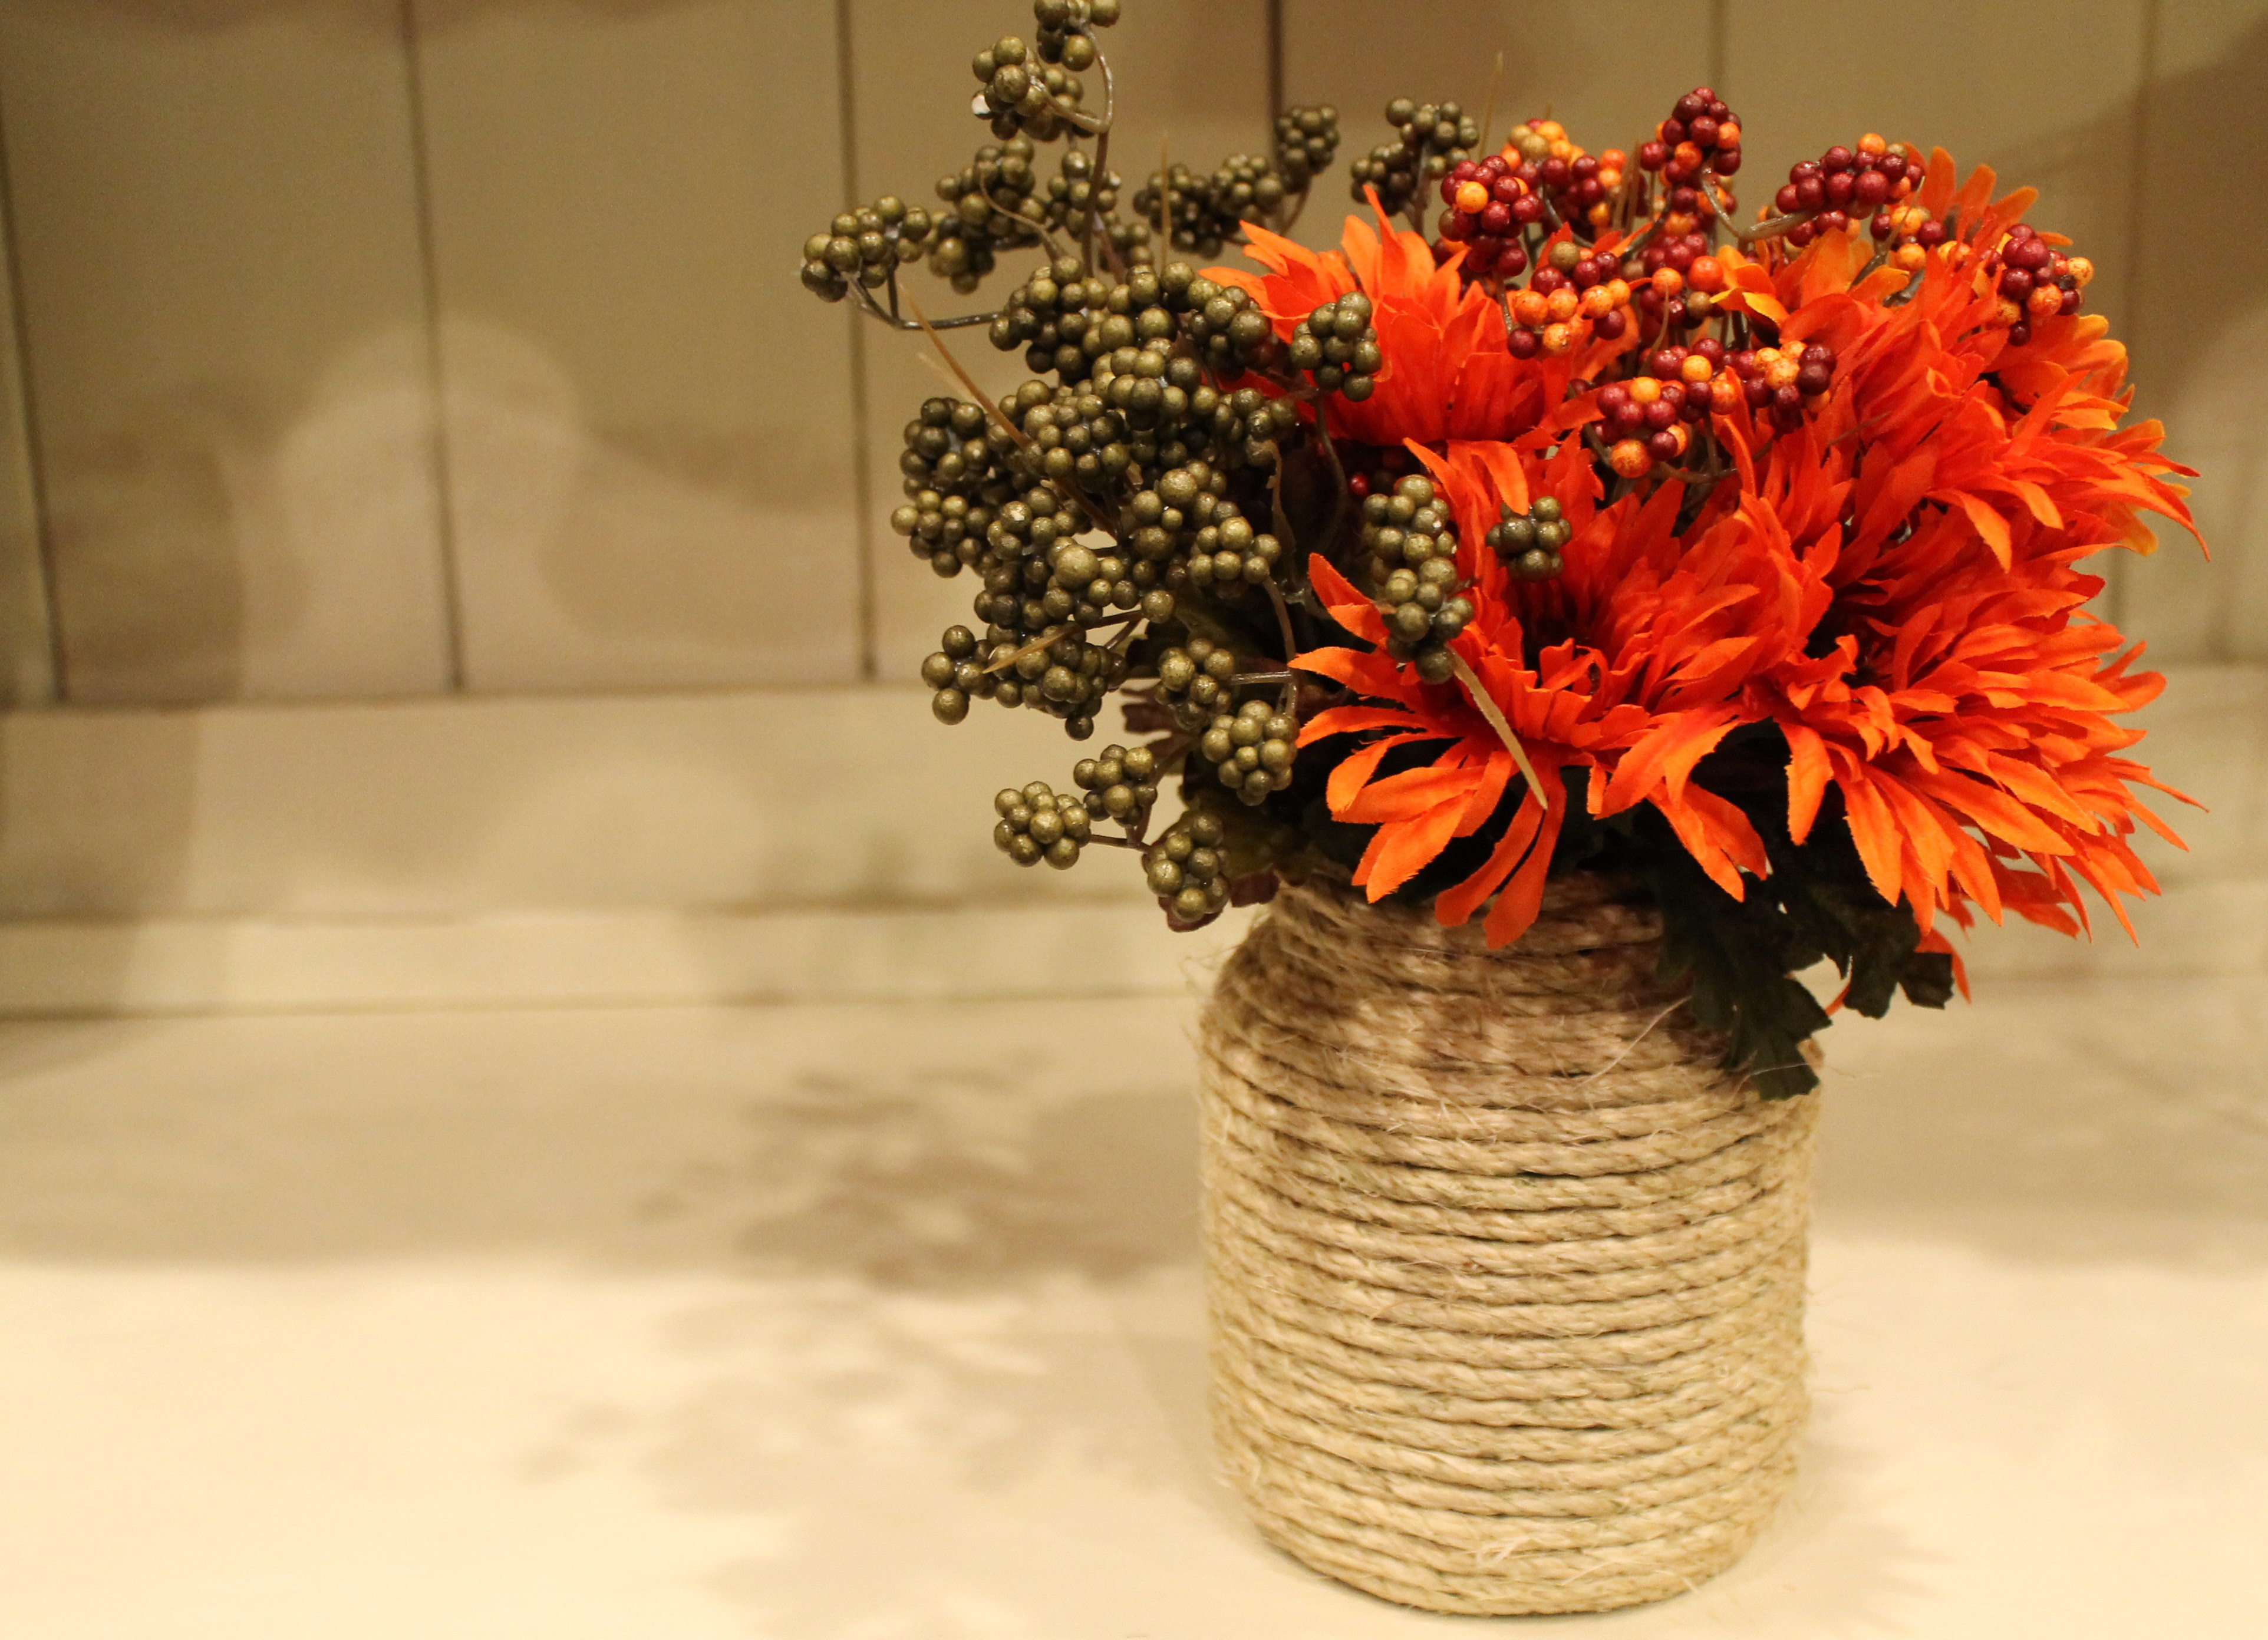 Diy fall twine vase domestic superhero diy fall twine vase a simple diy project with only a few supplies needed reviewsmspy